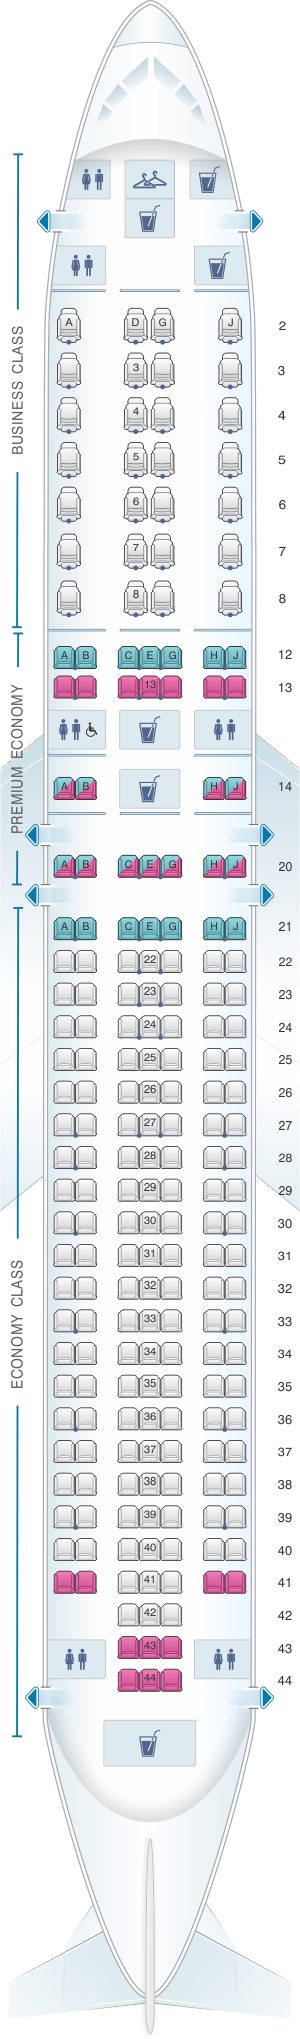 Seat map for American Airlines Boeing B767 300 retrofit